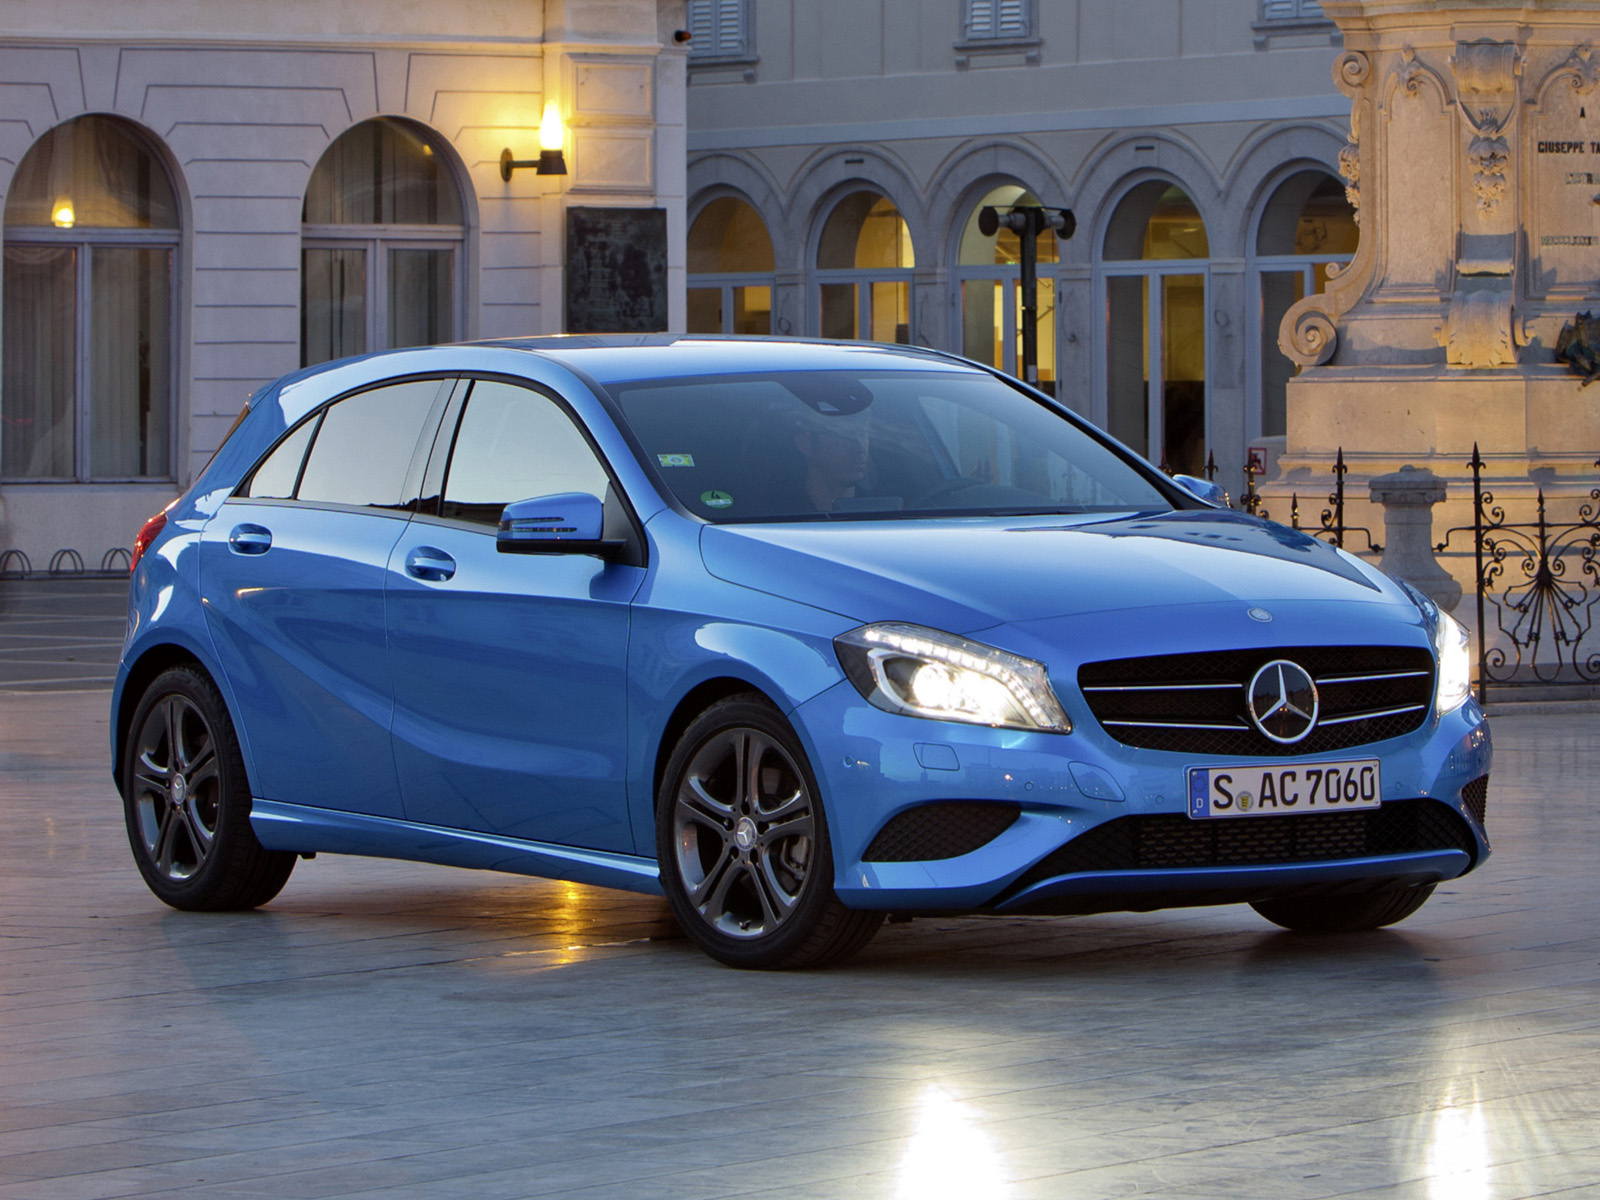 2019 Mercedes Benz A200 Elegance 5door photo - 3